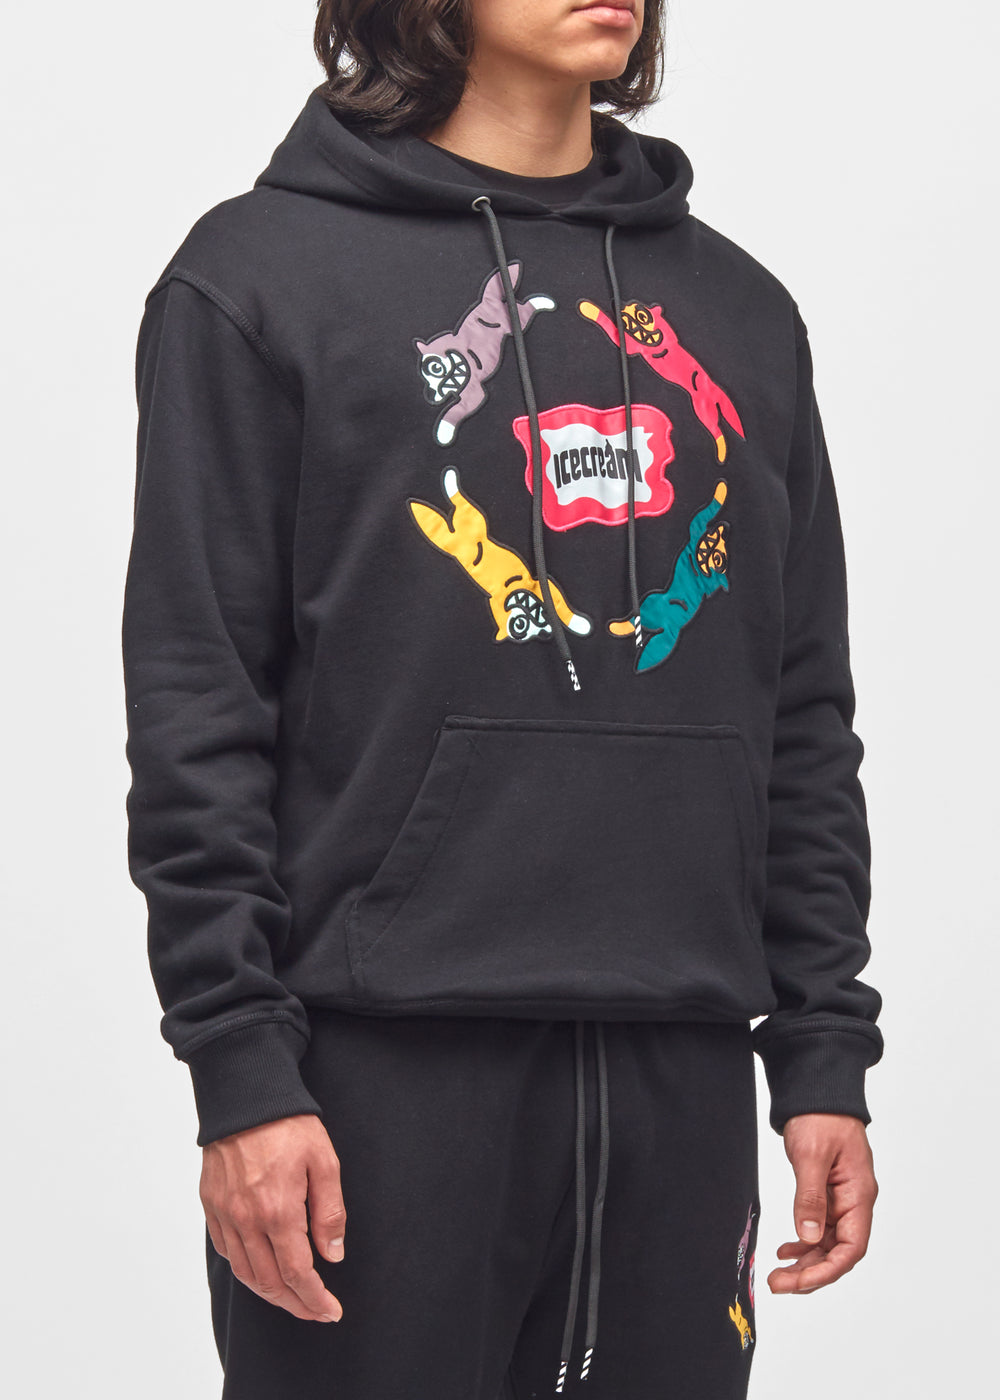 chase-hoodie-491-6308-blk-3